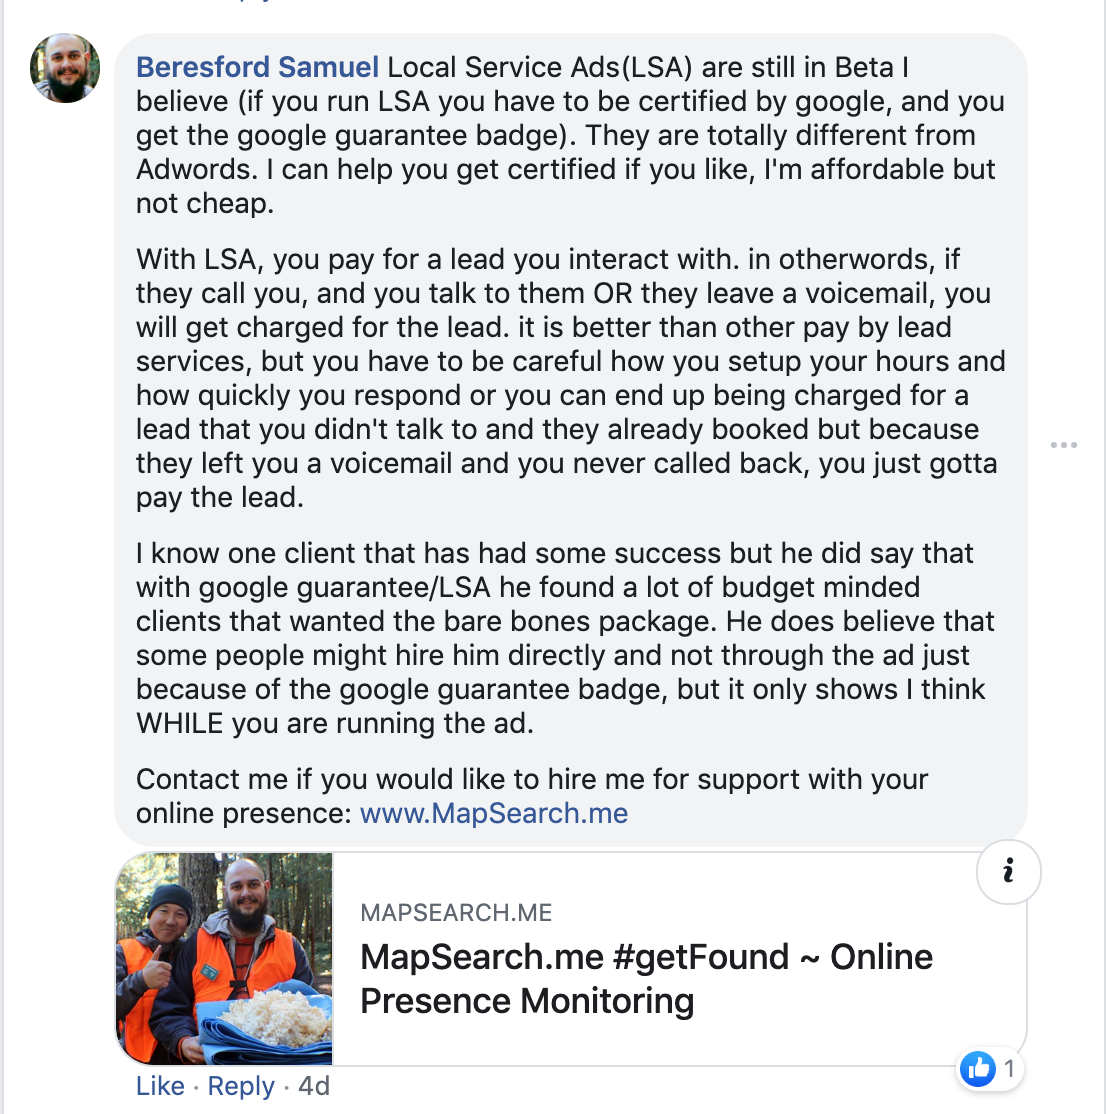 Beresford Samuel: Local Service Ads (LSA) are still in Beta I believe (if you run LSA you have to be certified Google, and you get the Google Guaranteed Badge). They are totally different from Adwords. I can help you get certified if you like. I'm affordable, but no cheap.   With LSA, you pay for a lead you interact with. In other words, if they call you and you talk to them or they leave a voicemail, yuo will get charged for the lead. It is better than other pay by lead services, but you have to be careful how you set up your horse and how quickly you respond or you can end up being charged for a lead that you didn't talk to and they already booked, but because they lead to a voicemail and you never call back, you just gotta pay the lead.   I know one client that has had some success=, but he did da that Google Gaurnteee/LSA he found a lot of budget-minded clients that wanted the bare-bones package. He does believe that some people might hire him directly and not through the adjust because of the Google Guarantee Badge, but it only shows I think while you are running the ad.   Contact me if you would like to hire me for support with your online presence.